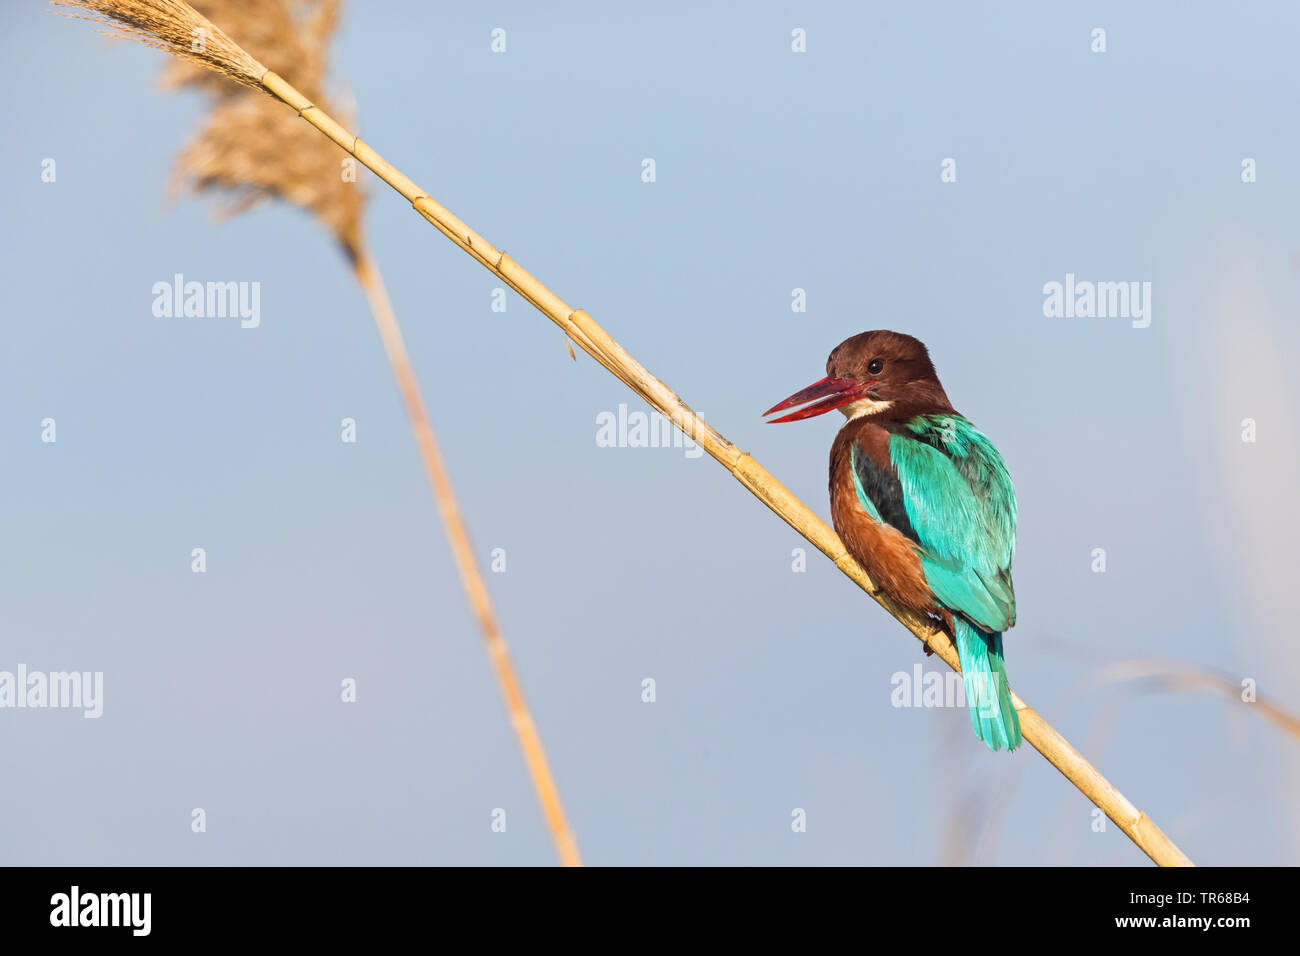 white-throated kingfisher, White-breasted Kingfisher, River Kingfisher (Halcyon smyrnensis), sitting on reed, Israel - Stock Image